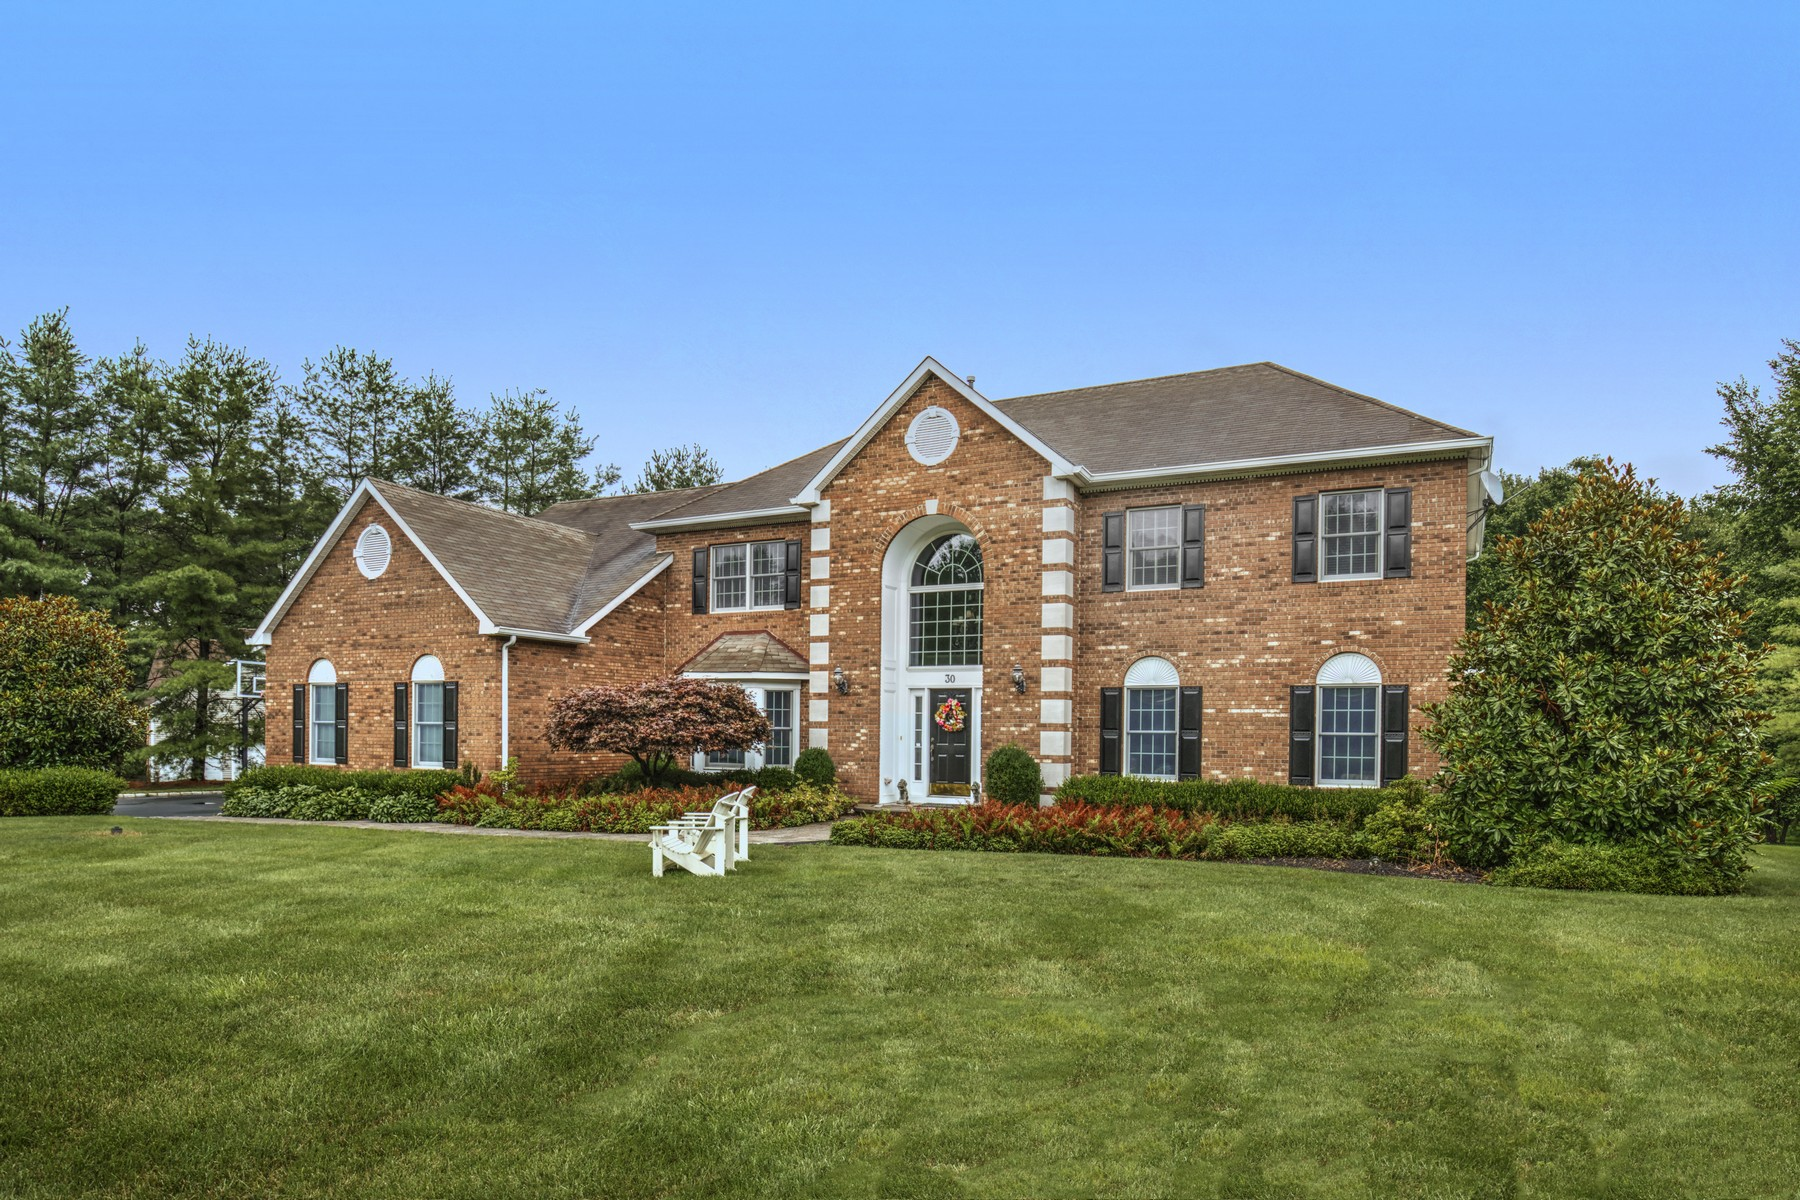 Single Family Homes for Sale at Gracious Colonial 30 Saint Nickolas Way Basking Ridge, New Jersey 07920 United States